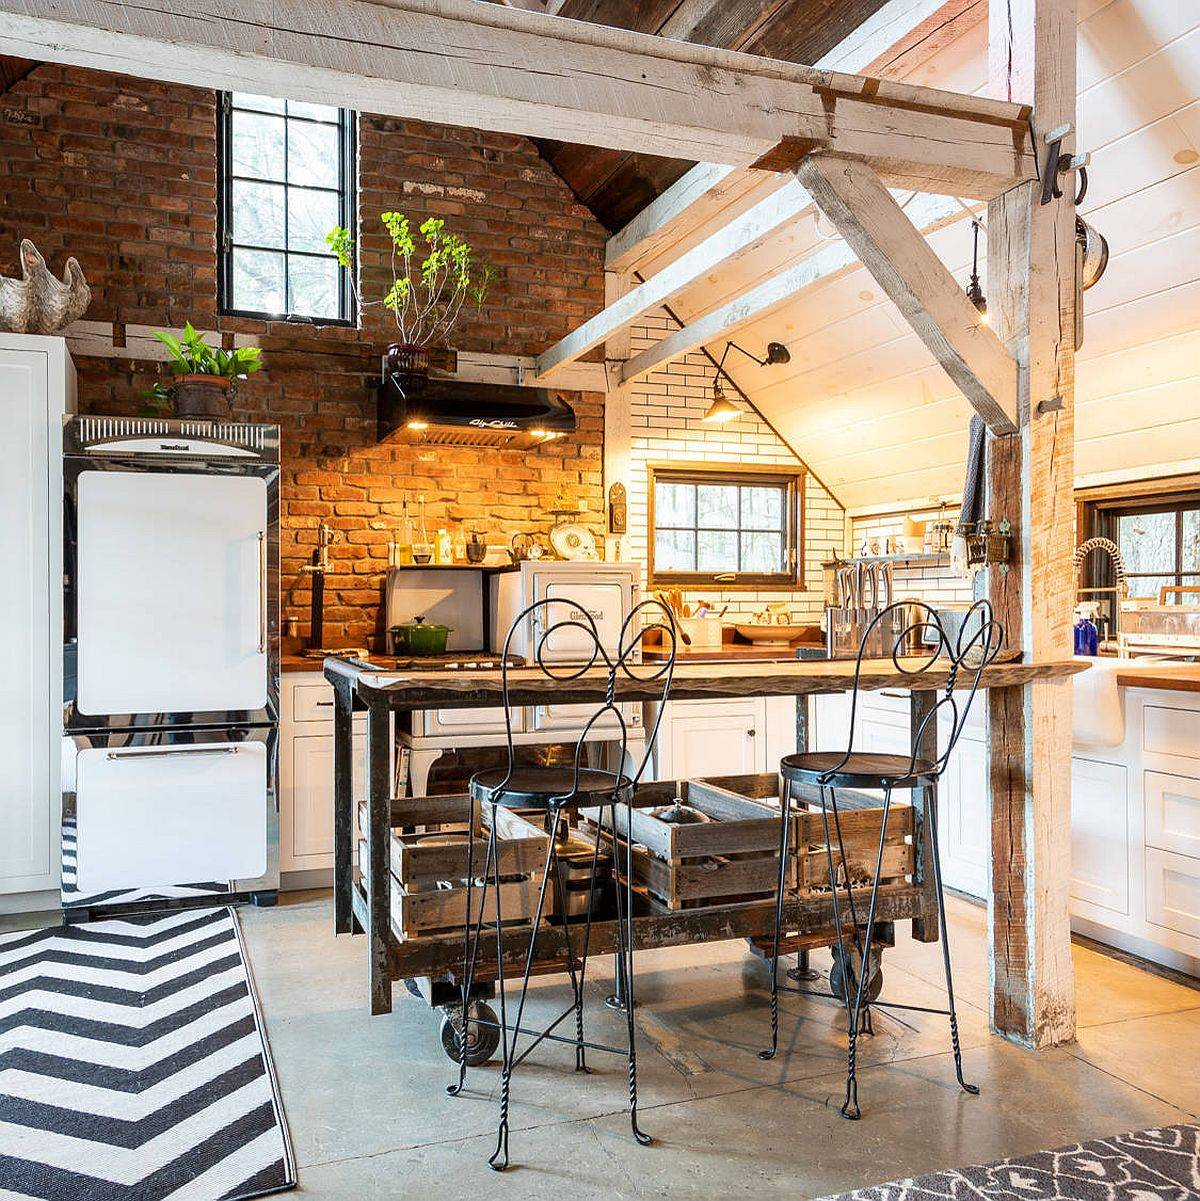 Shabby-chic-style-in-the-kitchen-is-no-all-about-feminine-overtones-as-seen-in-here-92519